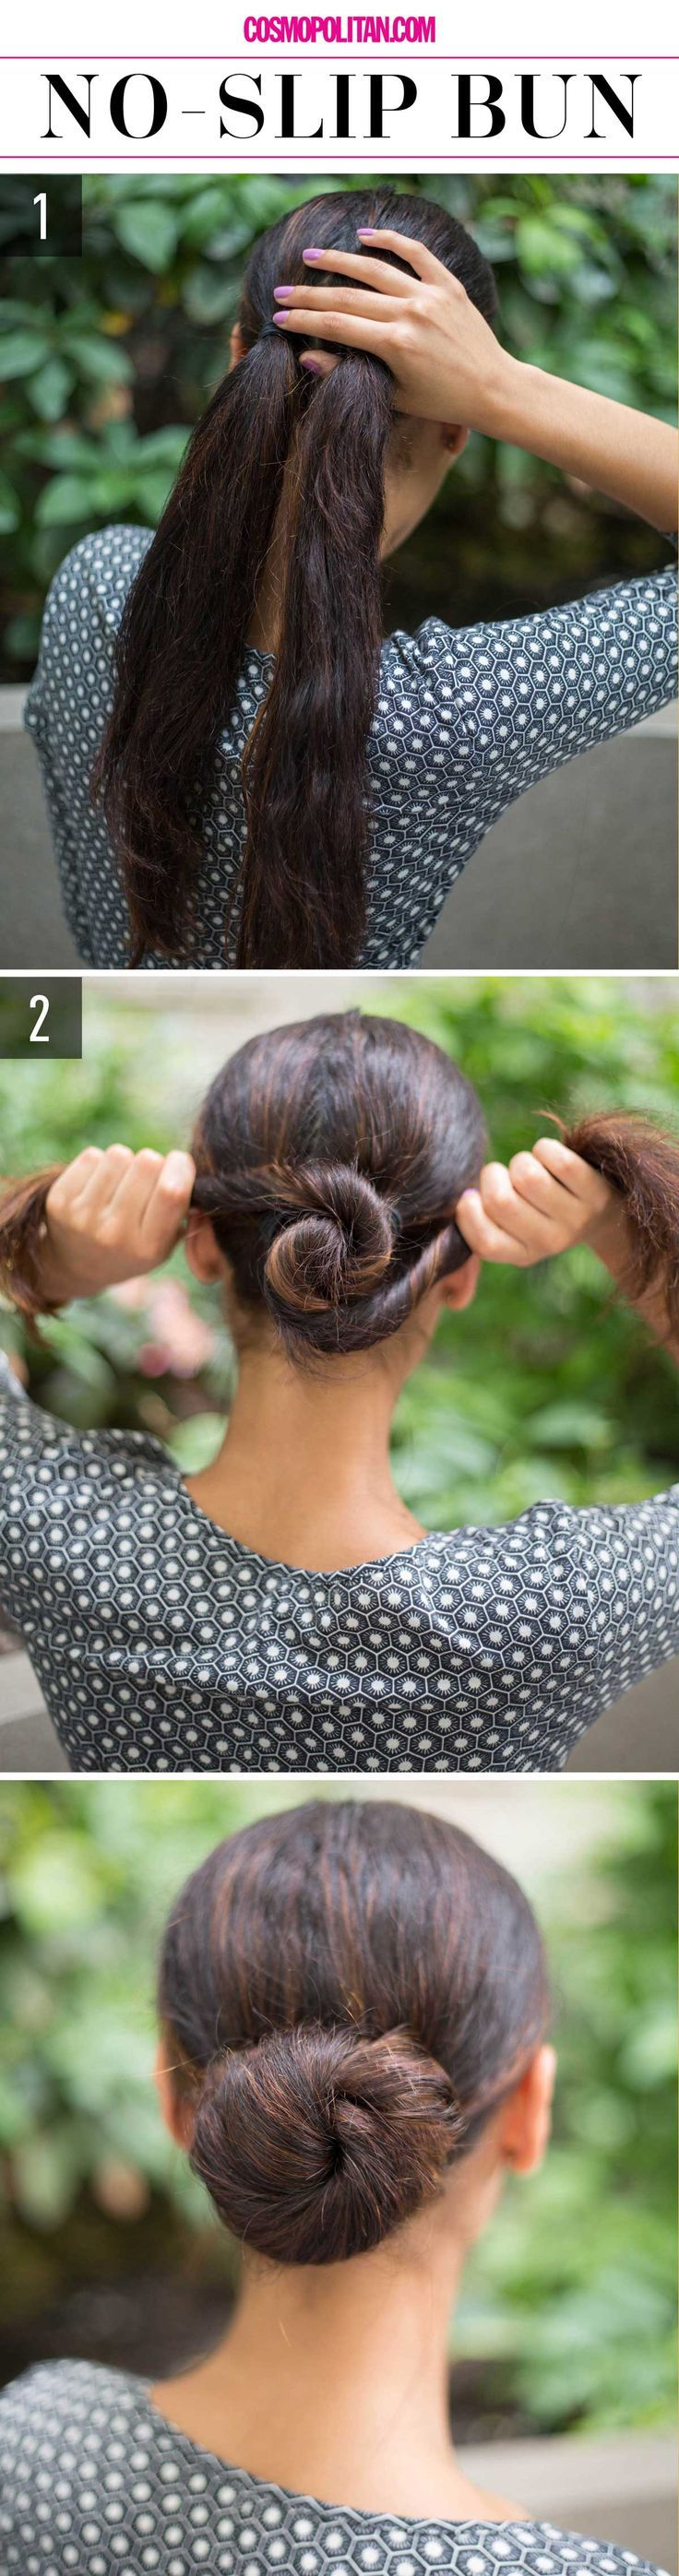 supereasy hairstyles for lazy girls who canut even bun bun